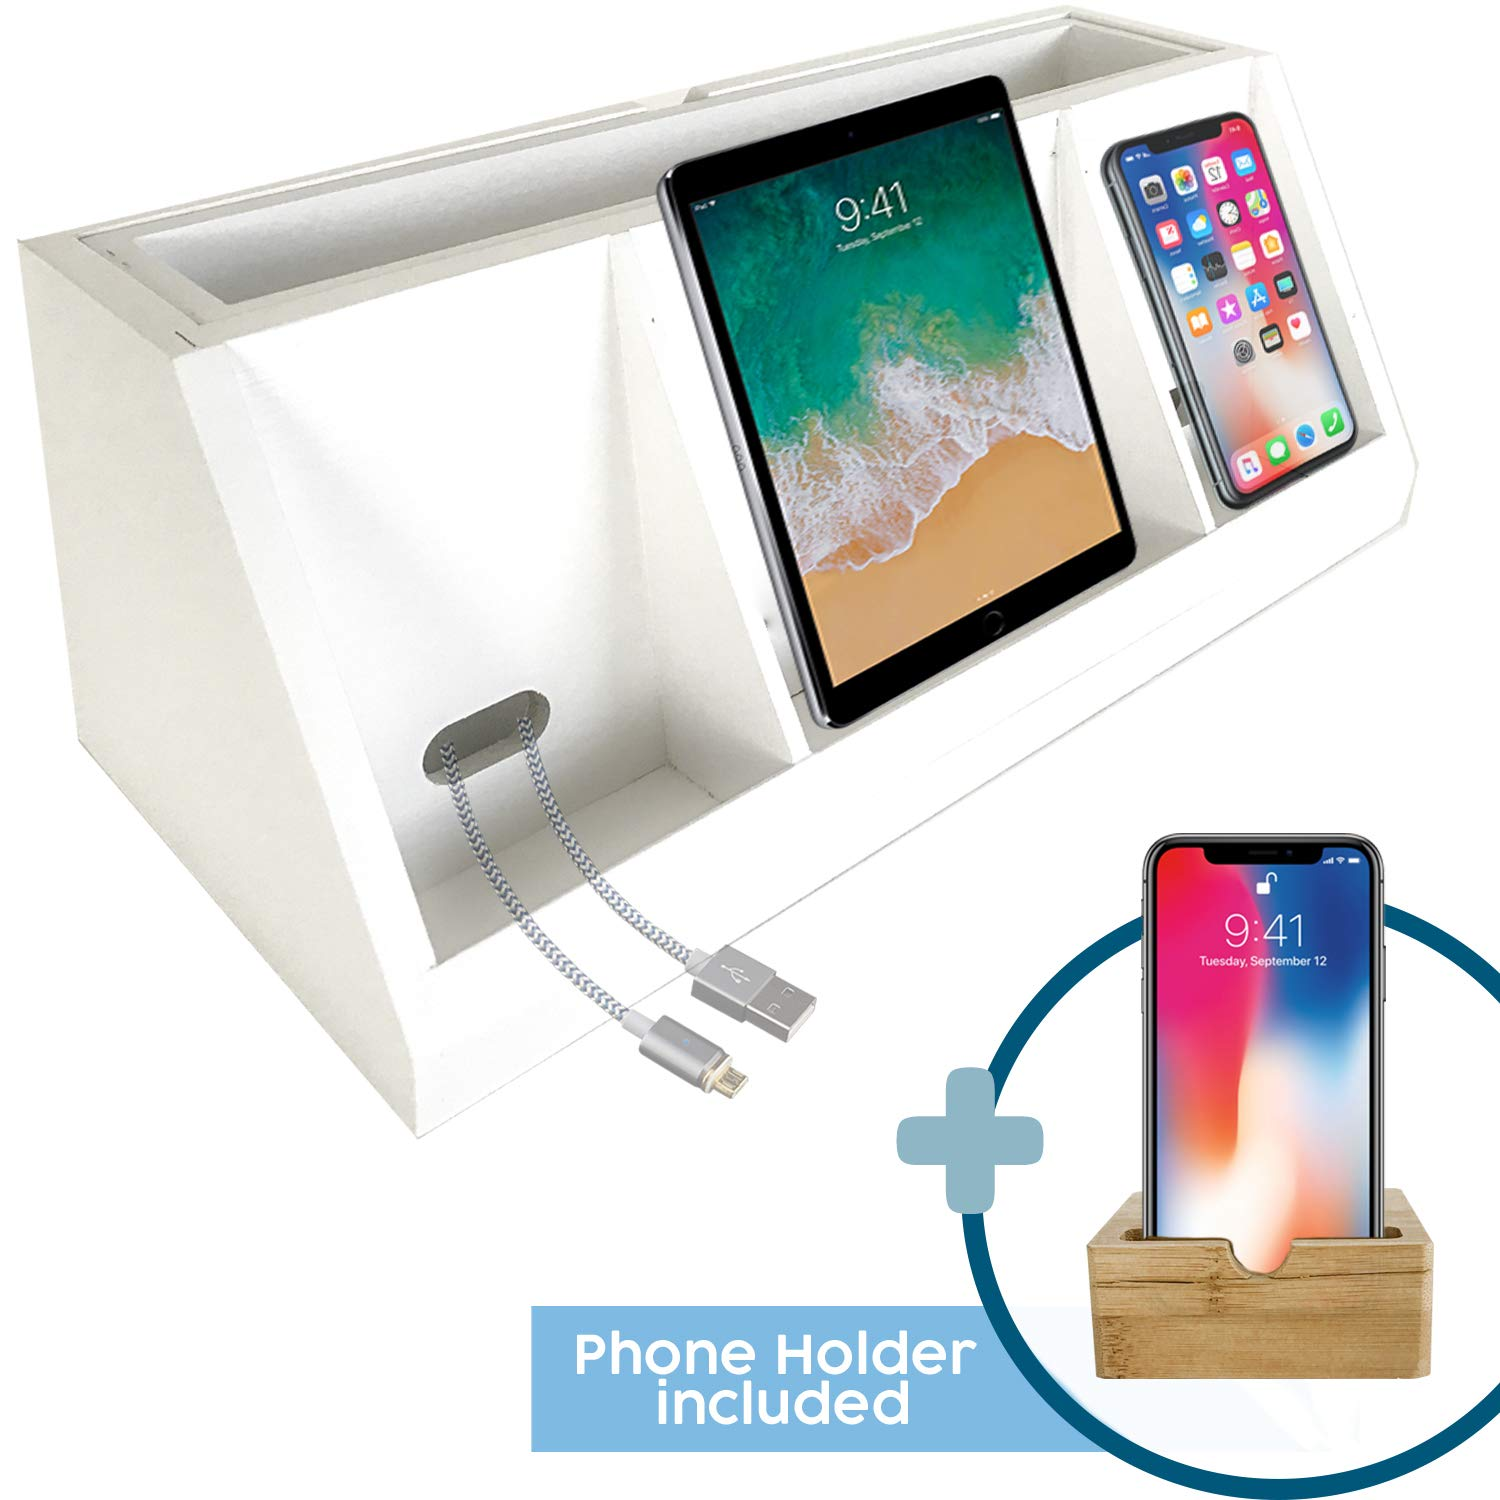 Bamboo Wood Charging Stand   Wooden Charger Station for Multiple Devices   Docking Stand Ideal for Family   Eco Friendly Phone Dock Station Organizer   Free Bamboo Phone Holder